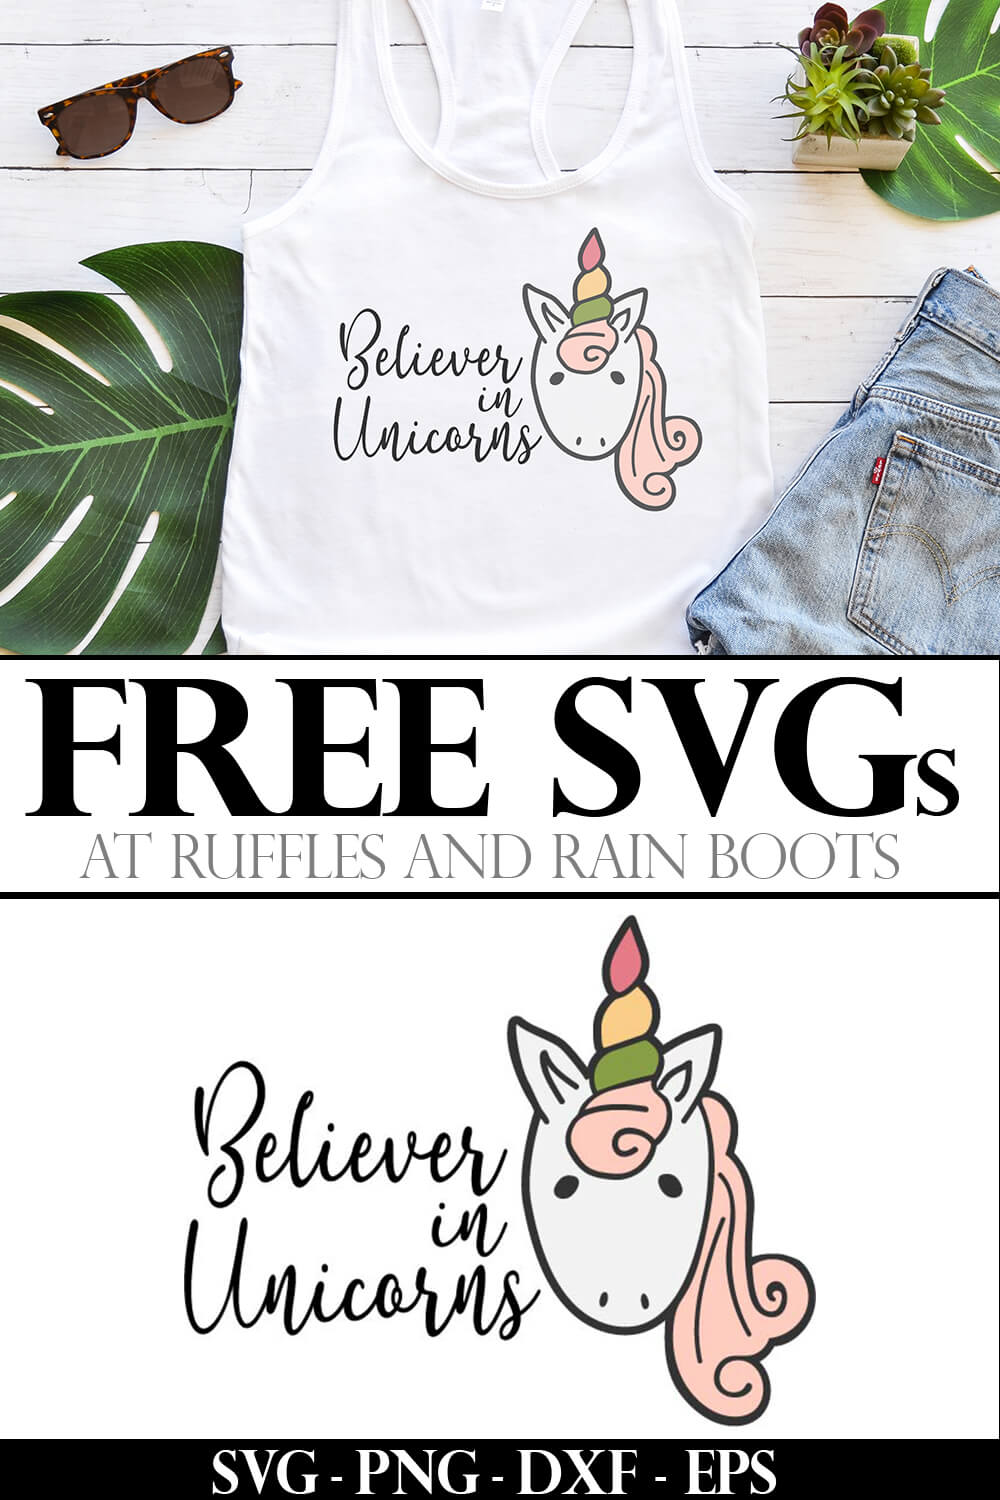 Believer in Unicorns free unicorn cut file on tank top with text which reads free svgs